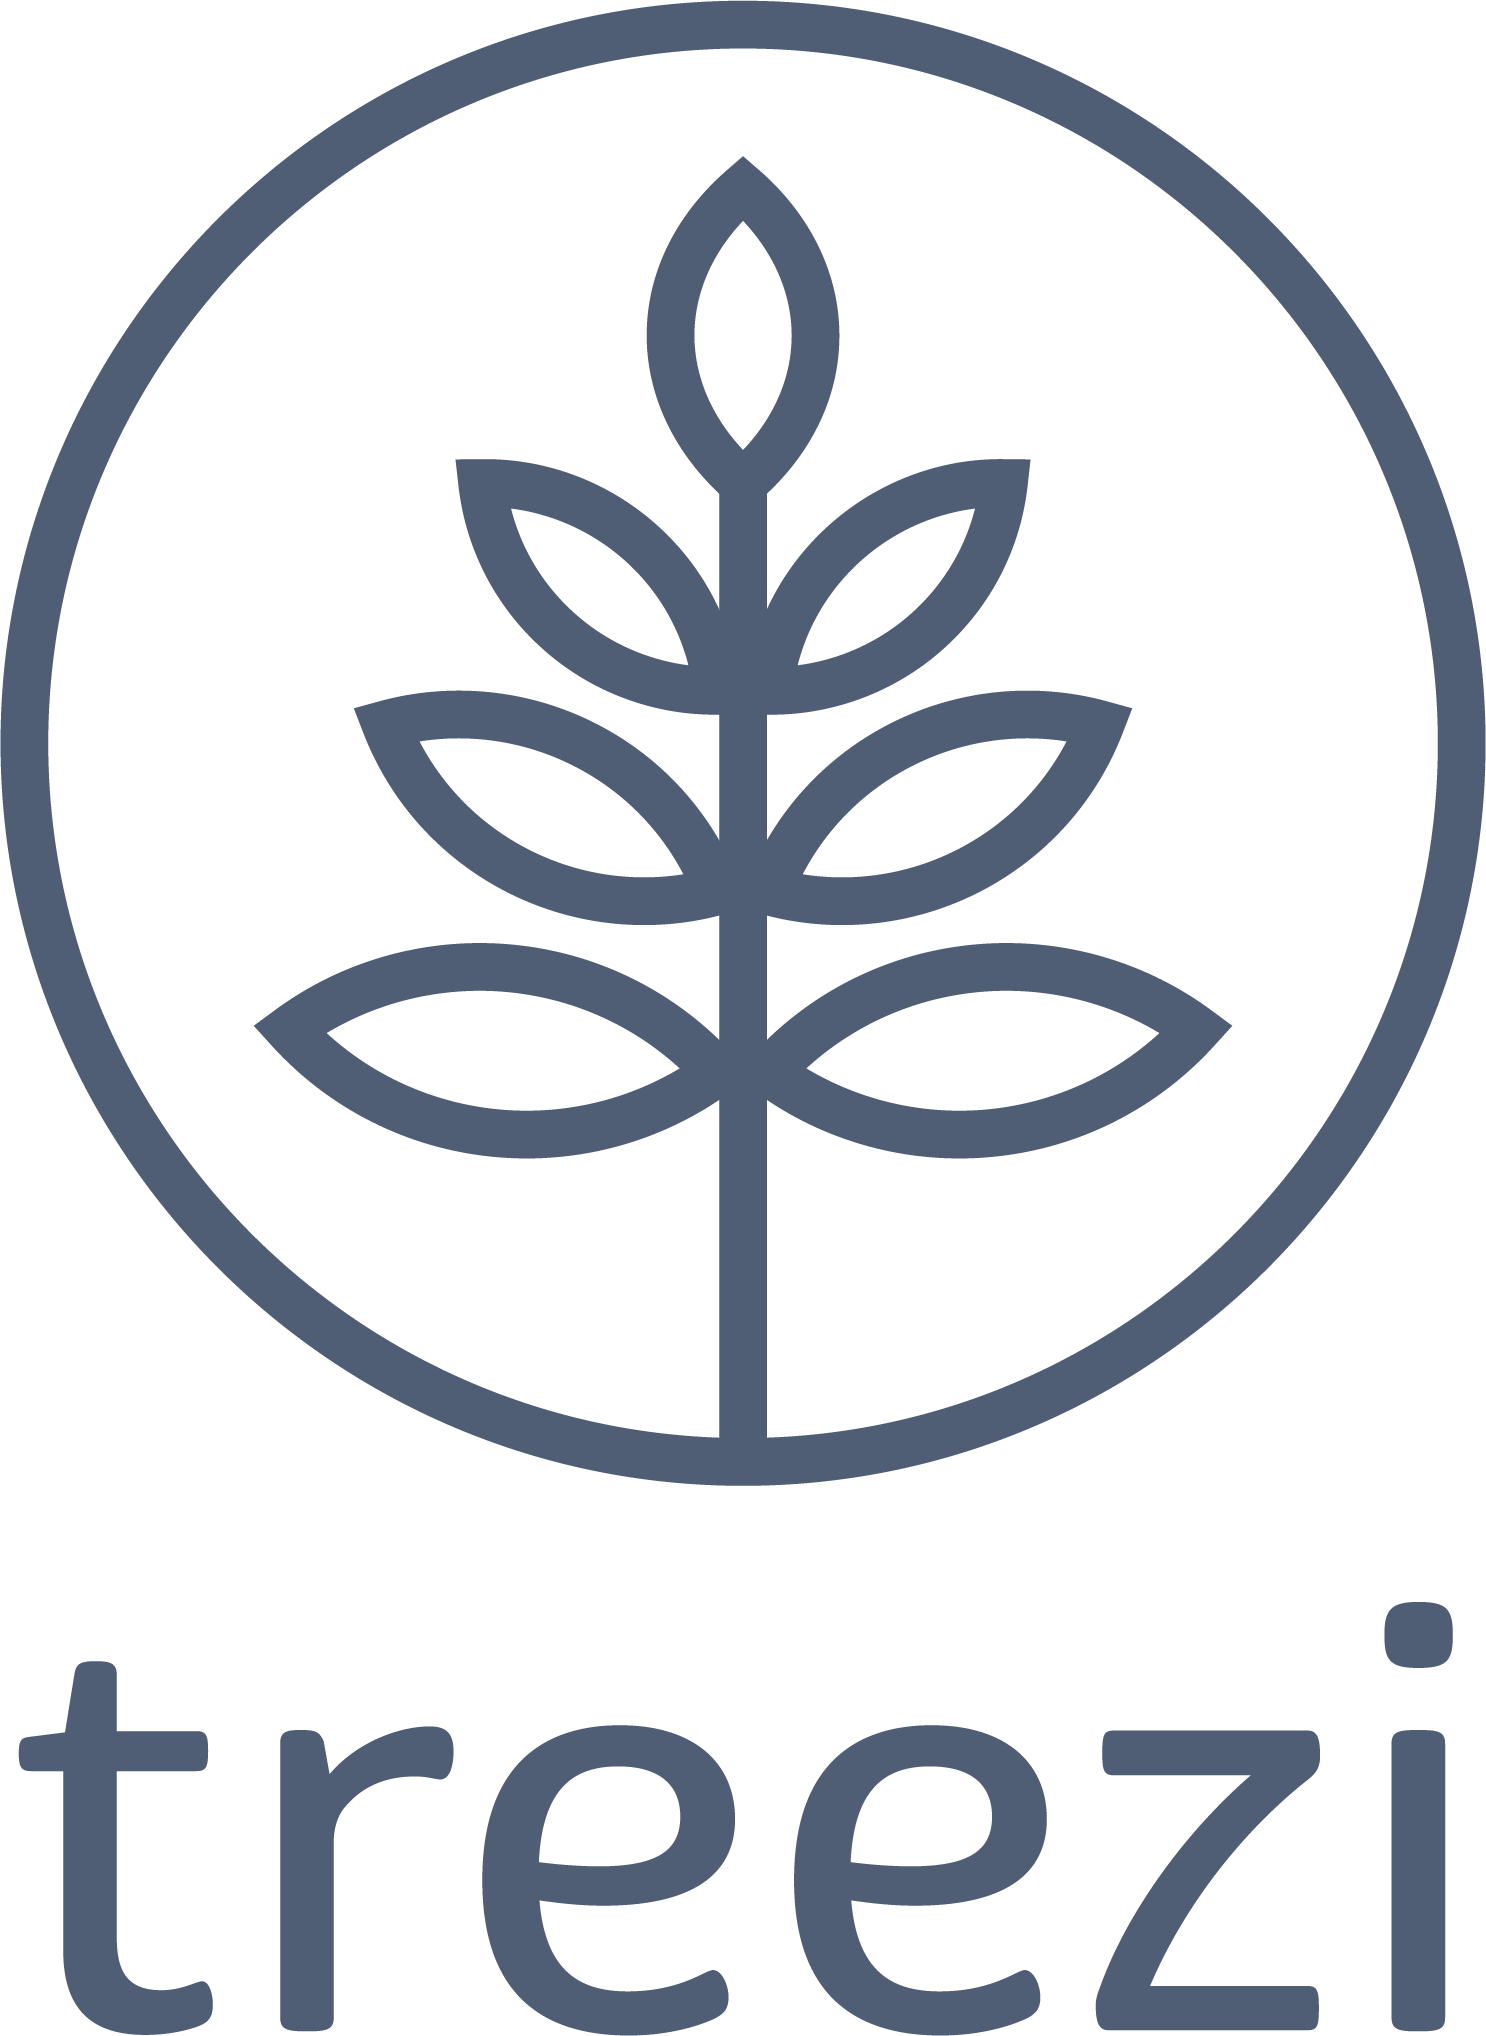 Treezi Help Center home page